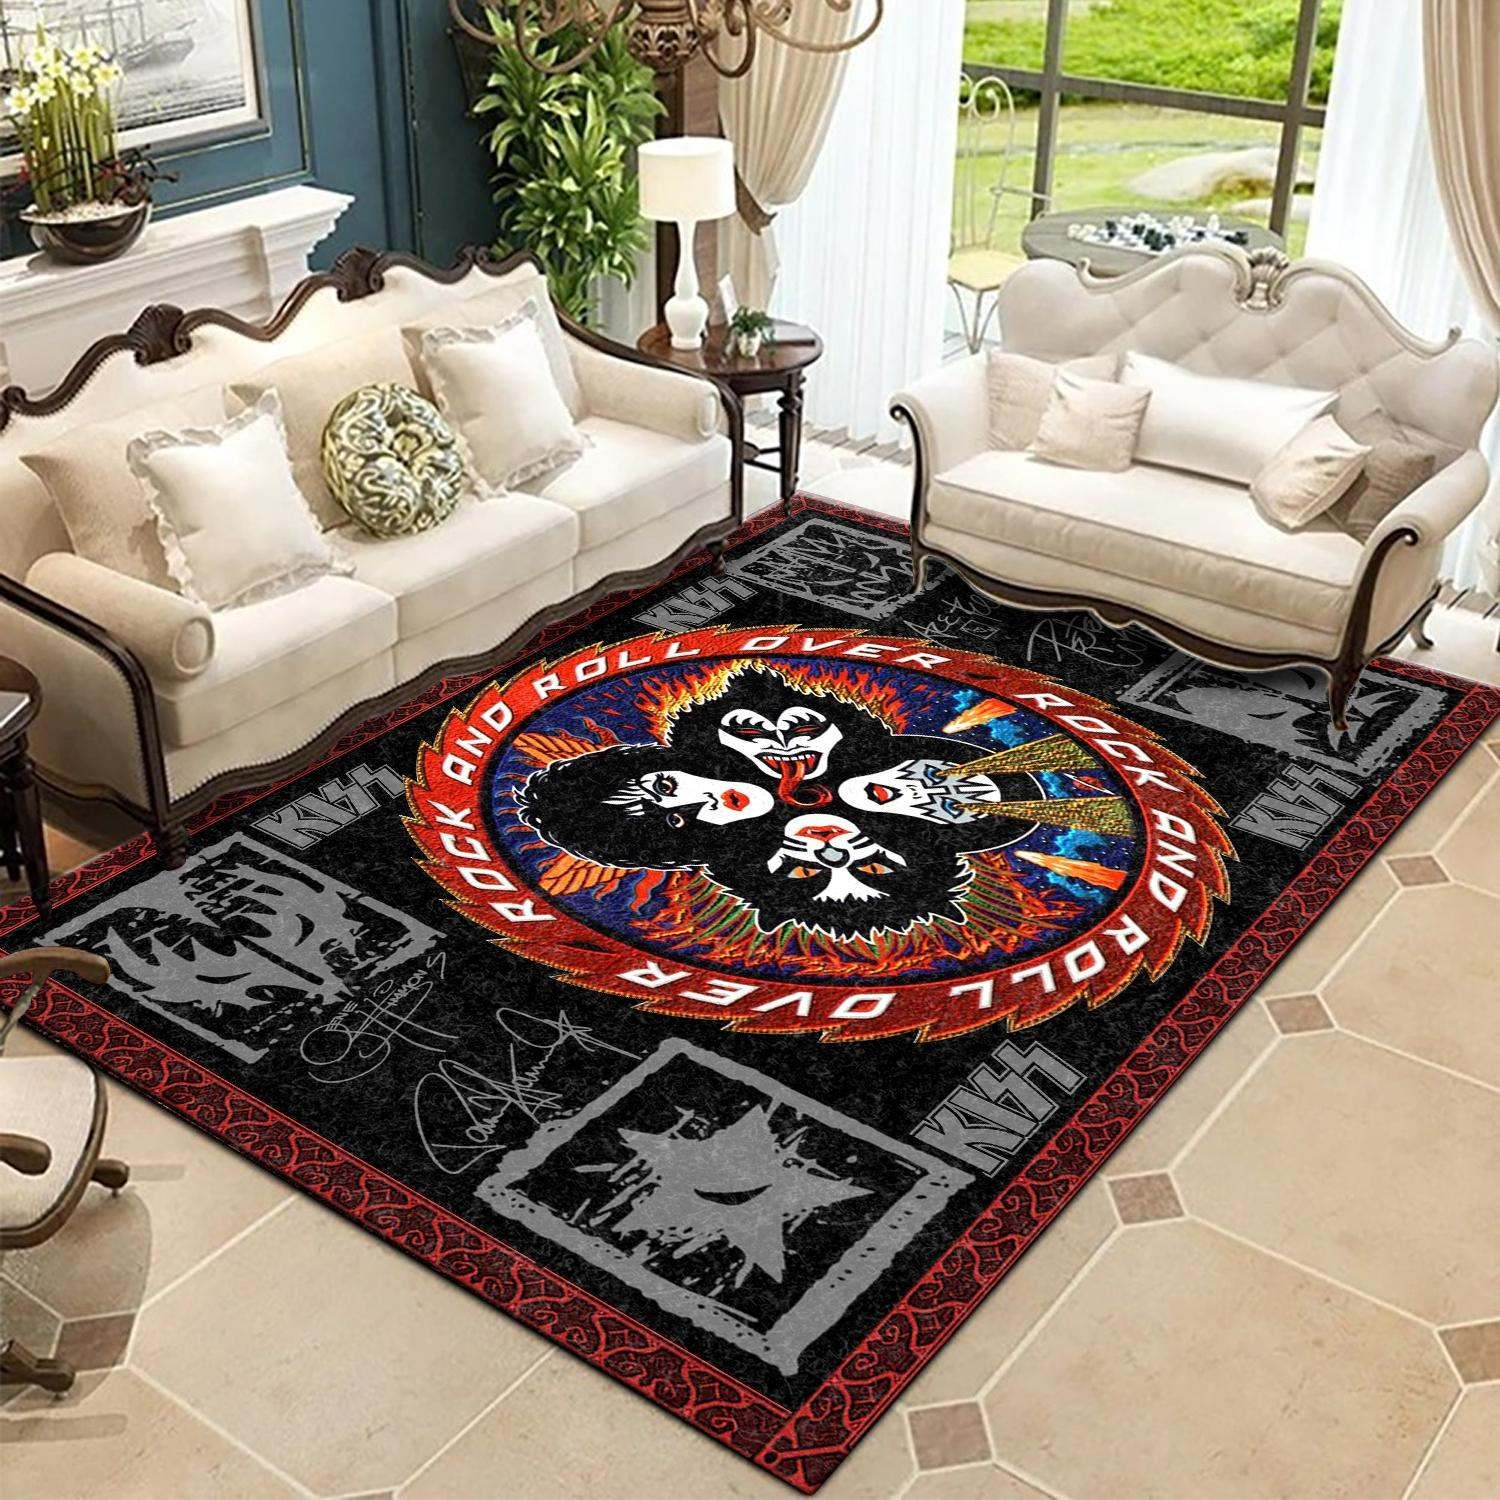 How To Dye Your Carpets Black Youtube